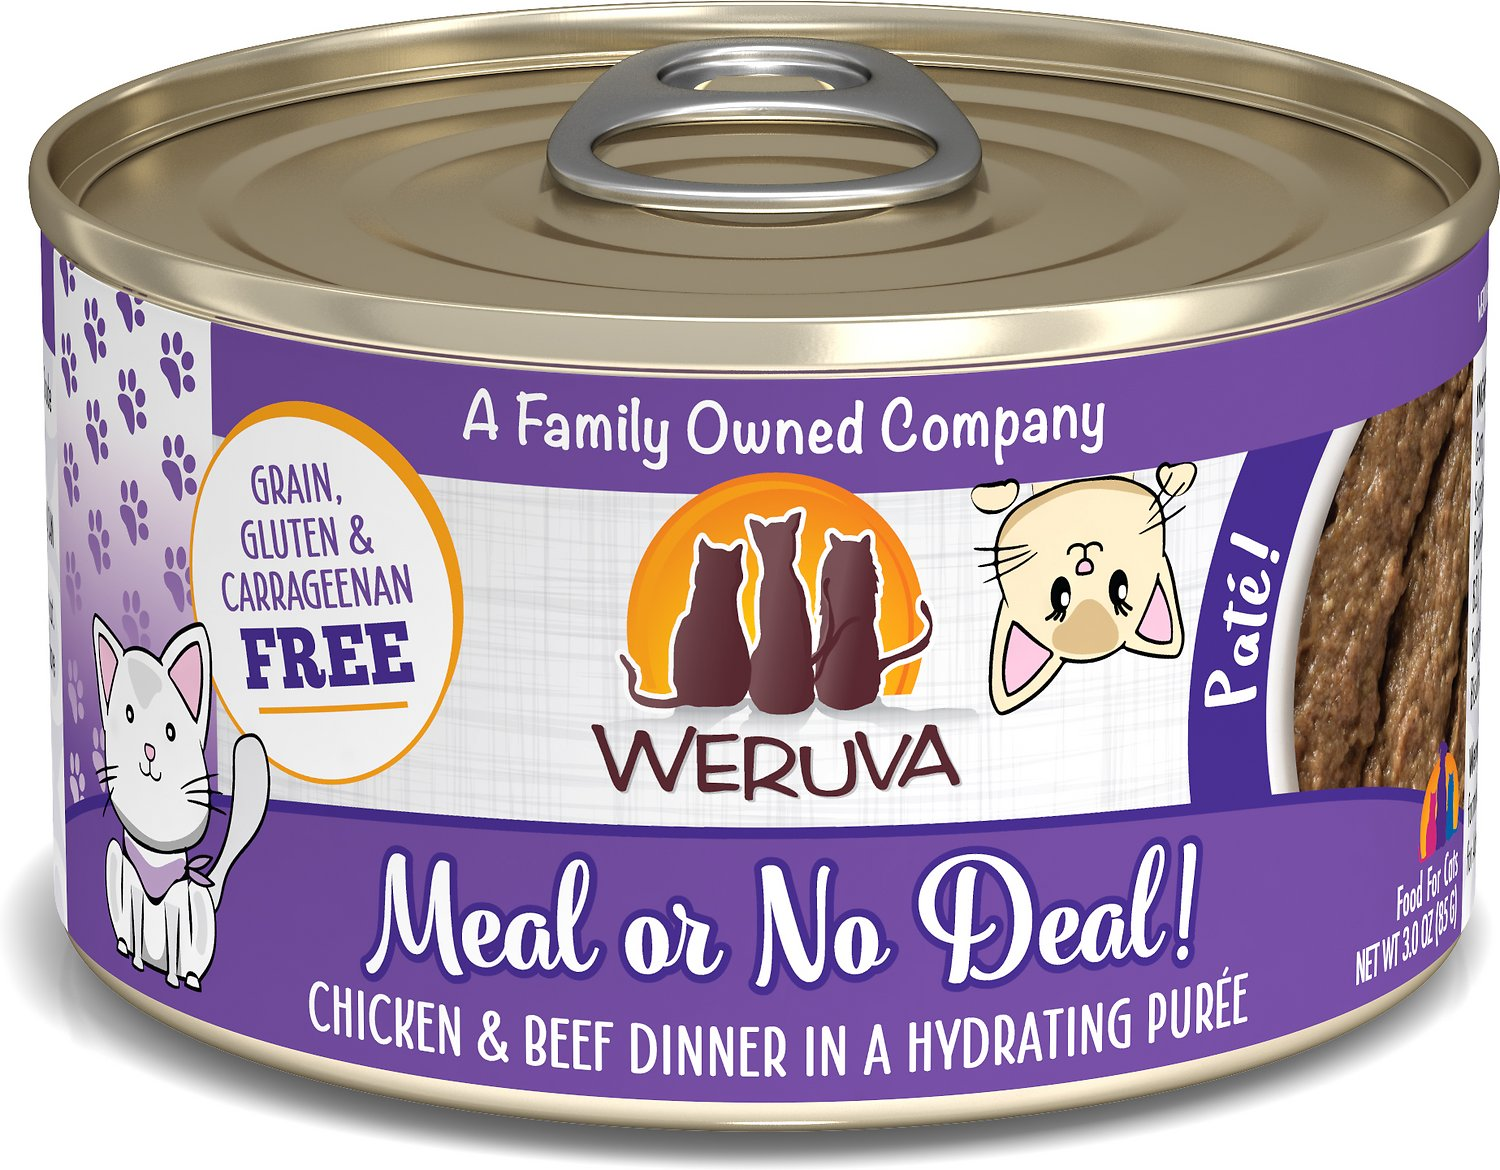 Weruva Classic Cat Meal or No Deal Chicken & Beef Pate Canned Cat ...